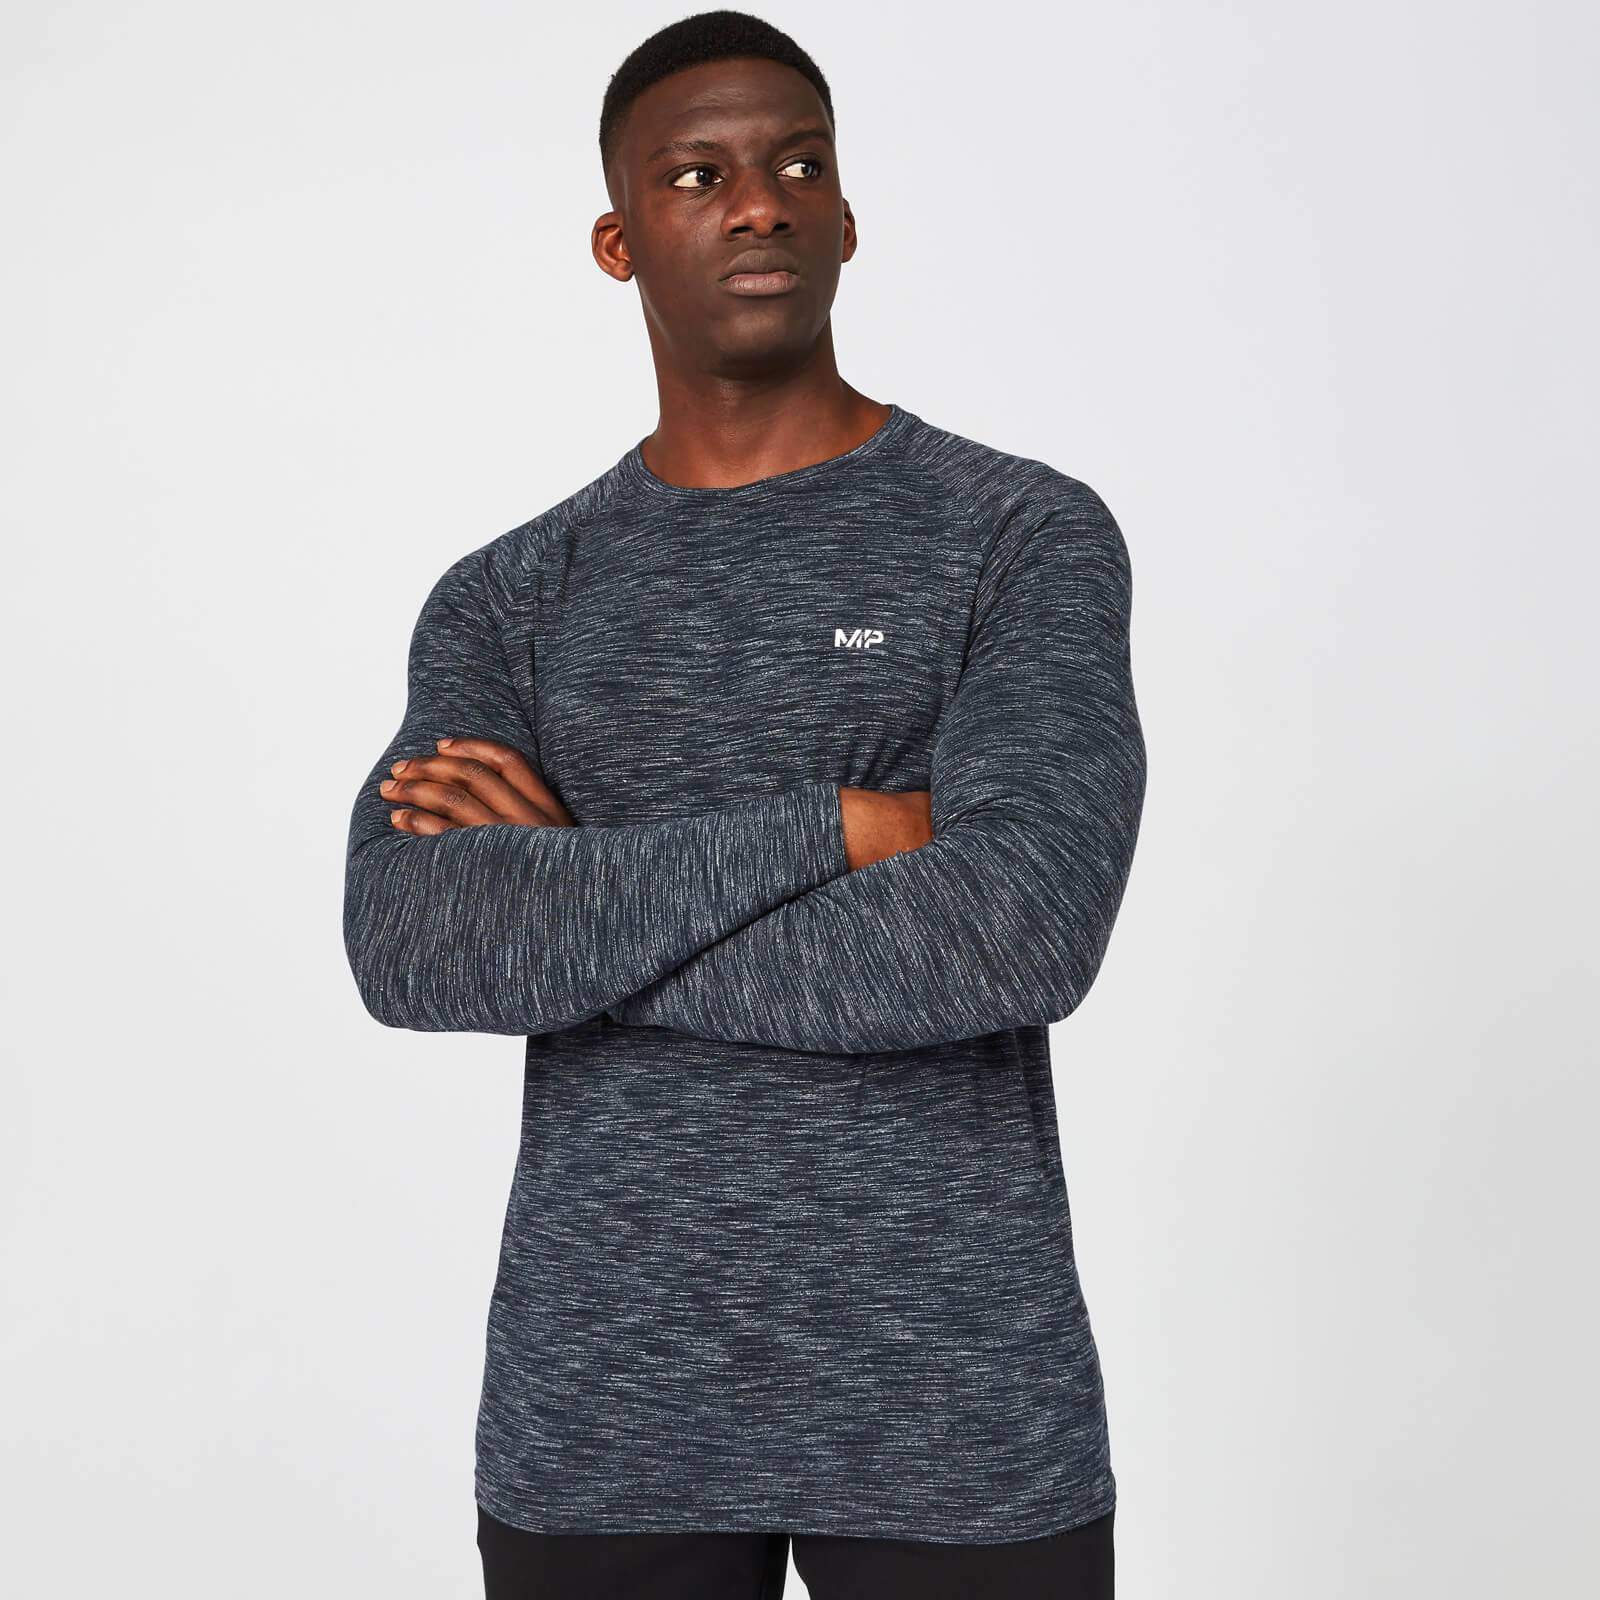 Mp Men's Performance Long Sleeve Top - Navy Marl - M